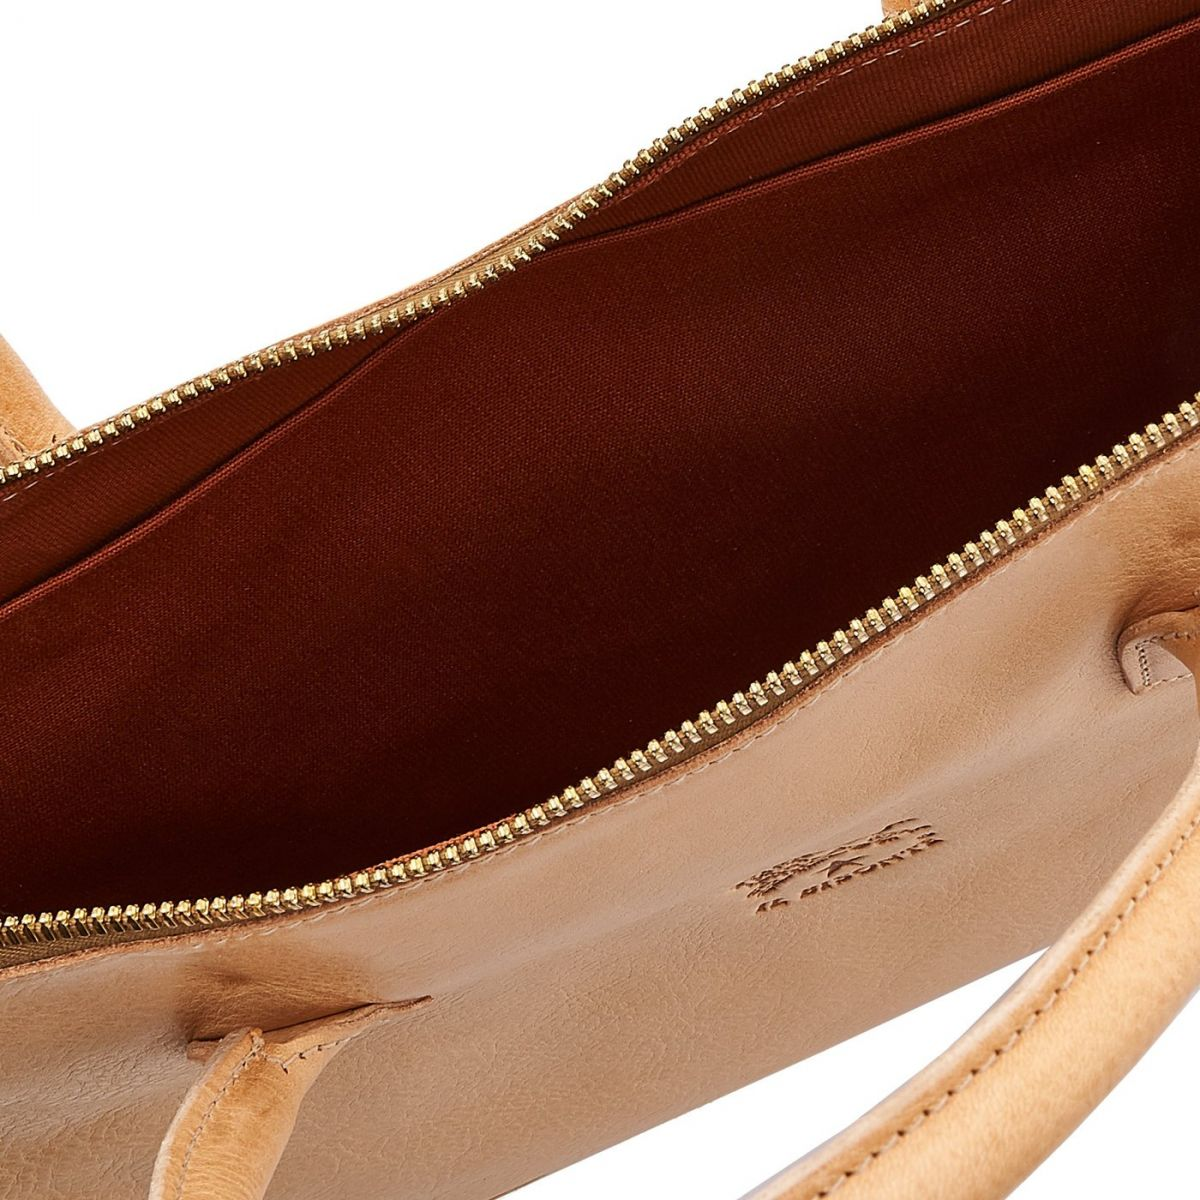 Briefcase Michelangelo in Cowhide Double Leather BBC035 color Natural | Details